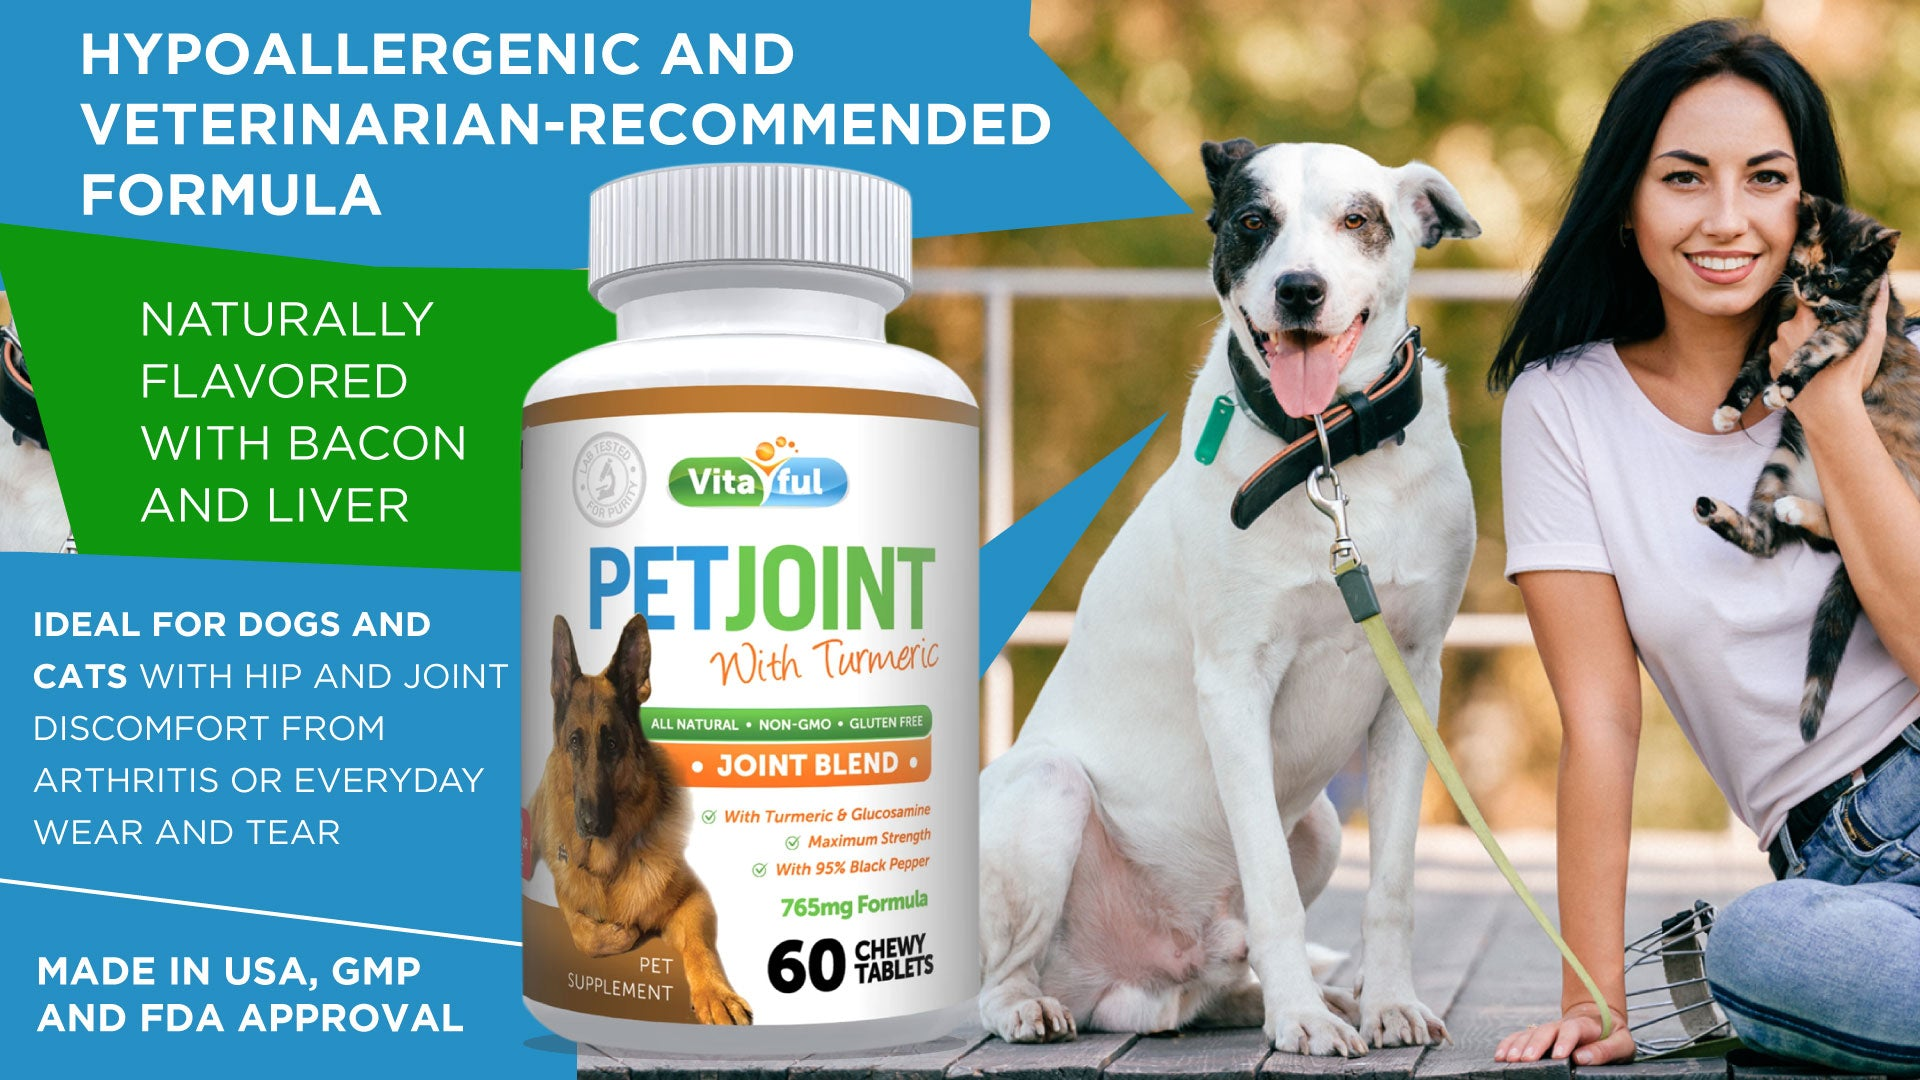 Vitaful Pet Joint Care - Turmeric and Glucosamine